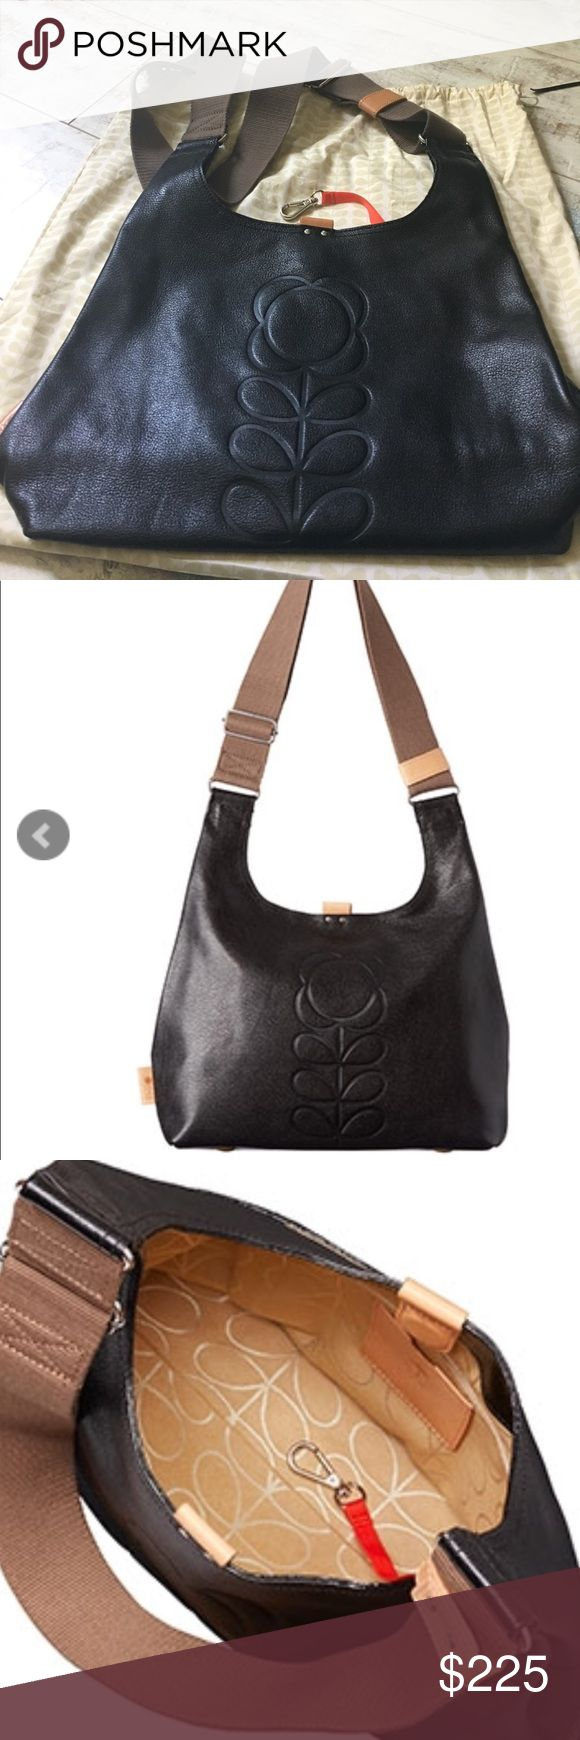 Orla Kiely mid sling stem crossbody. Black leather mid sling crossbody, worn once clean inside no wear anywhere on bag. Bought Dublin airport retails right now $300. Comes with dustbag. Orla Kiely Bags Crossbody Bags